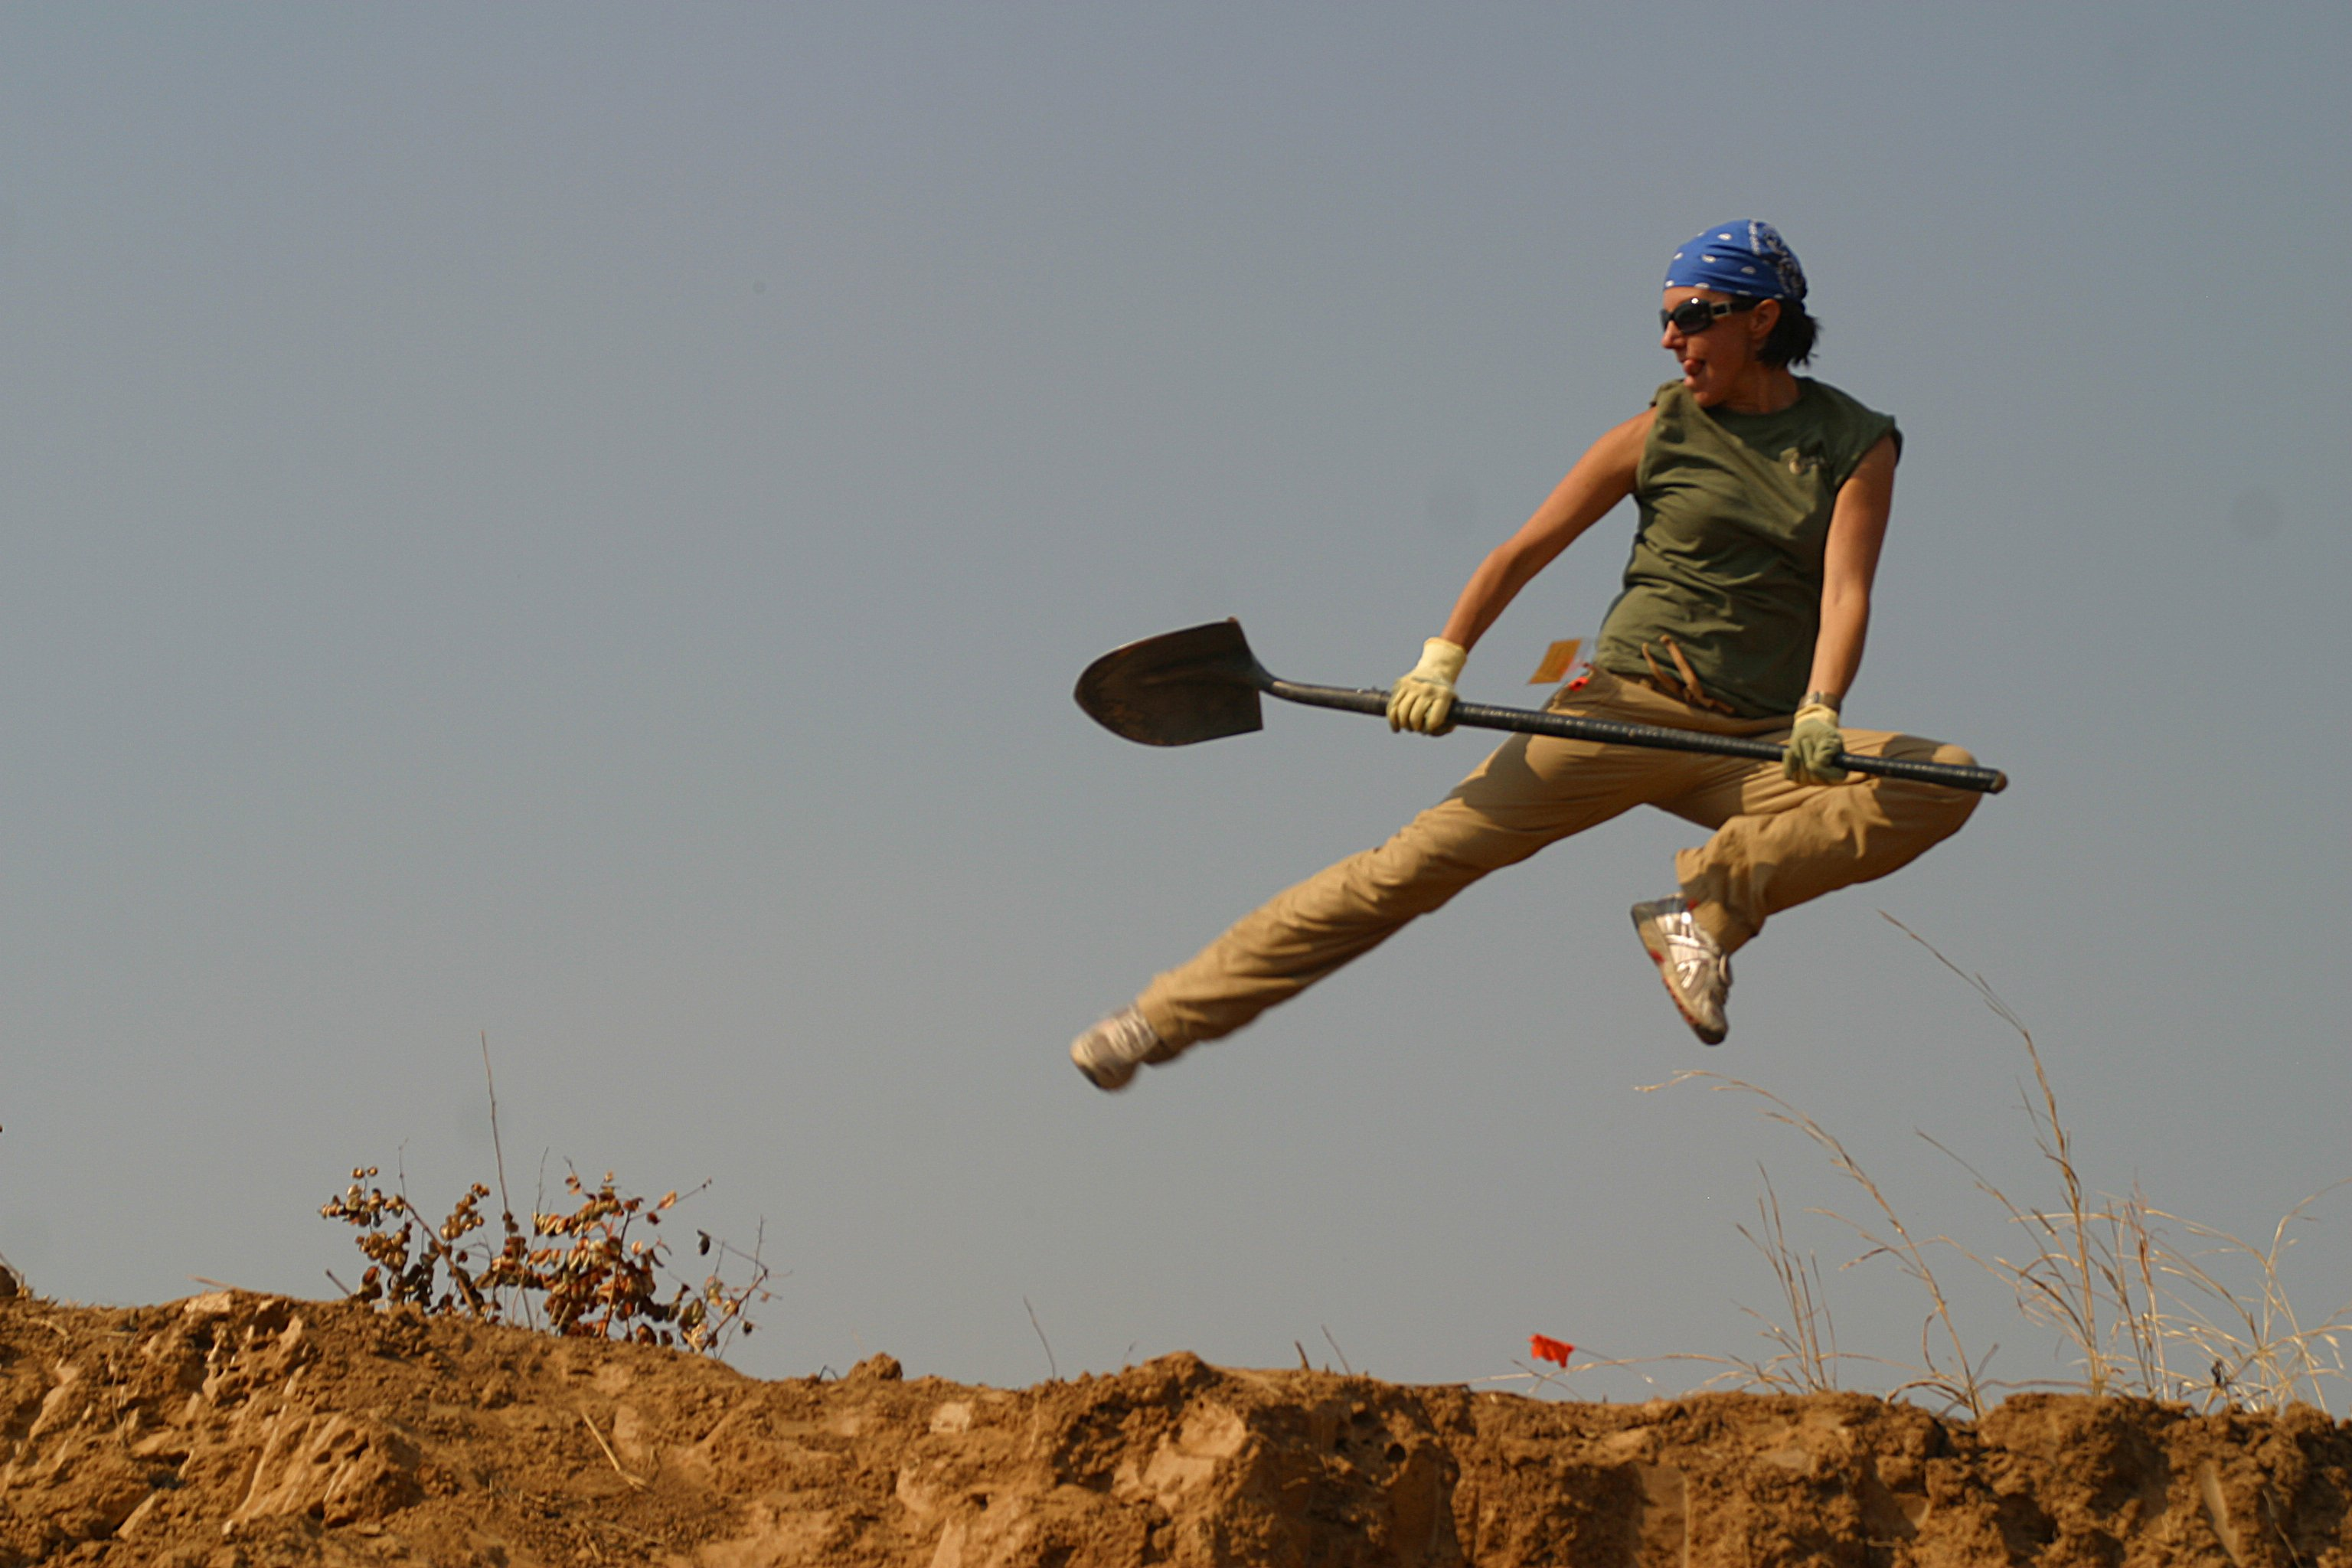 jumping shovel